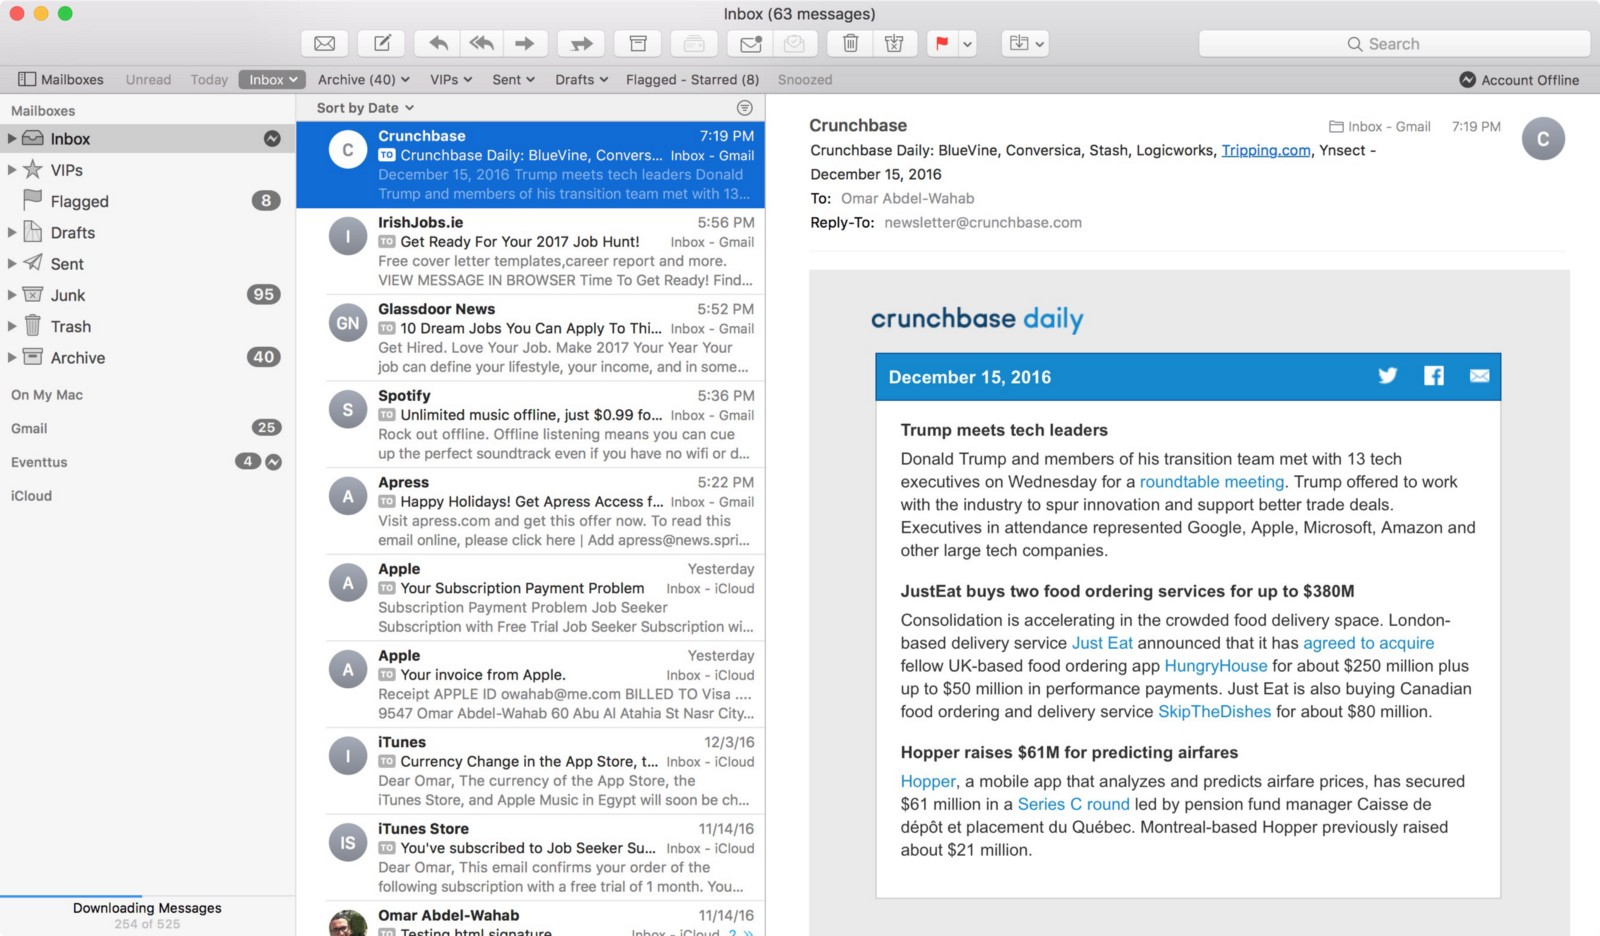 Software for email mac